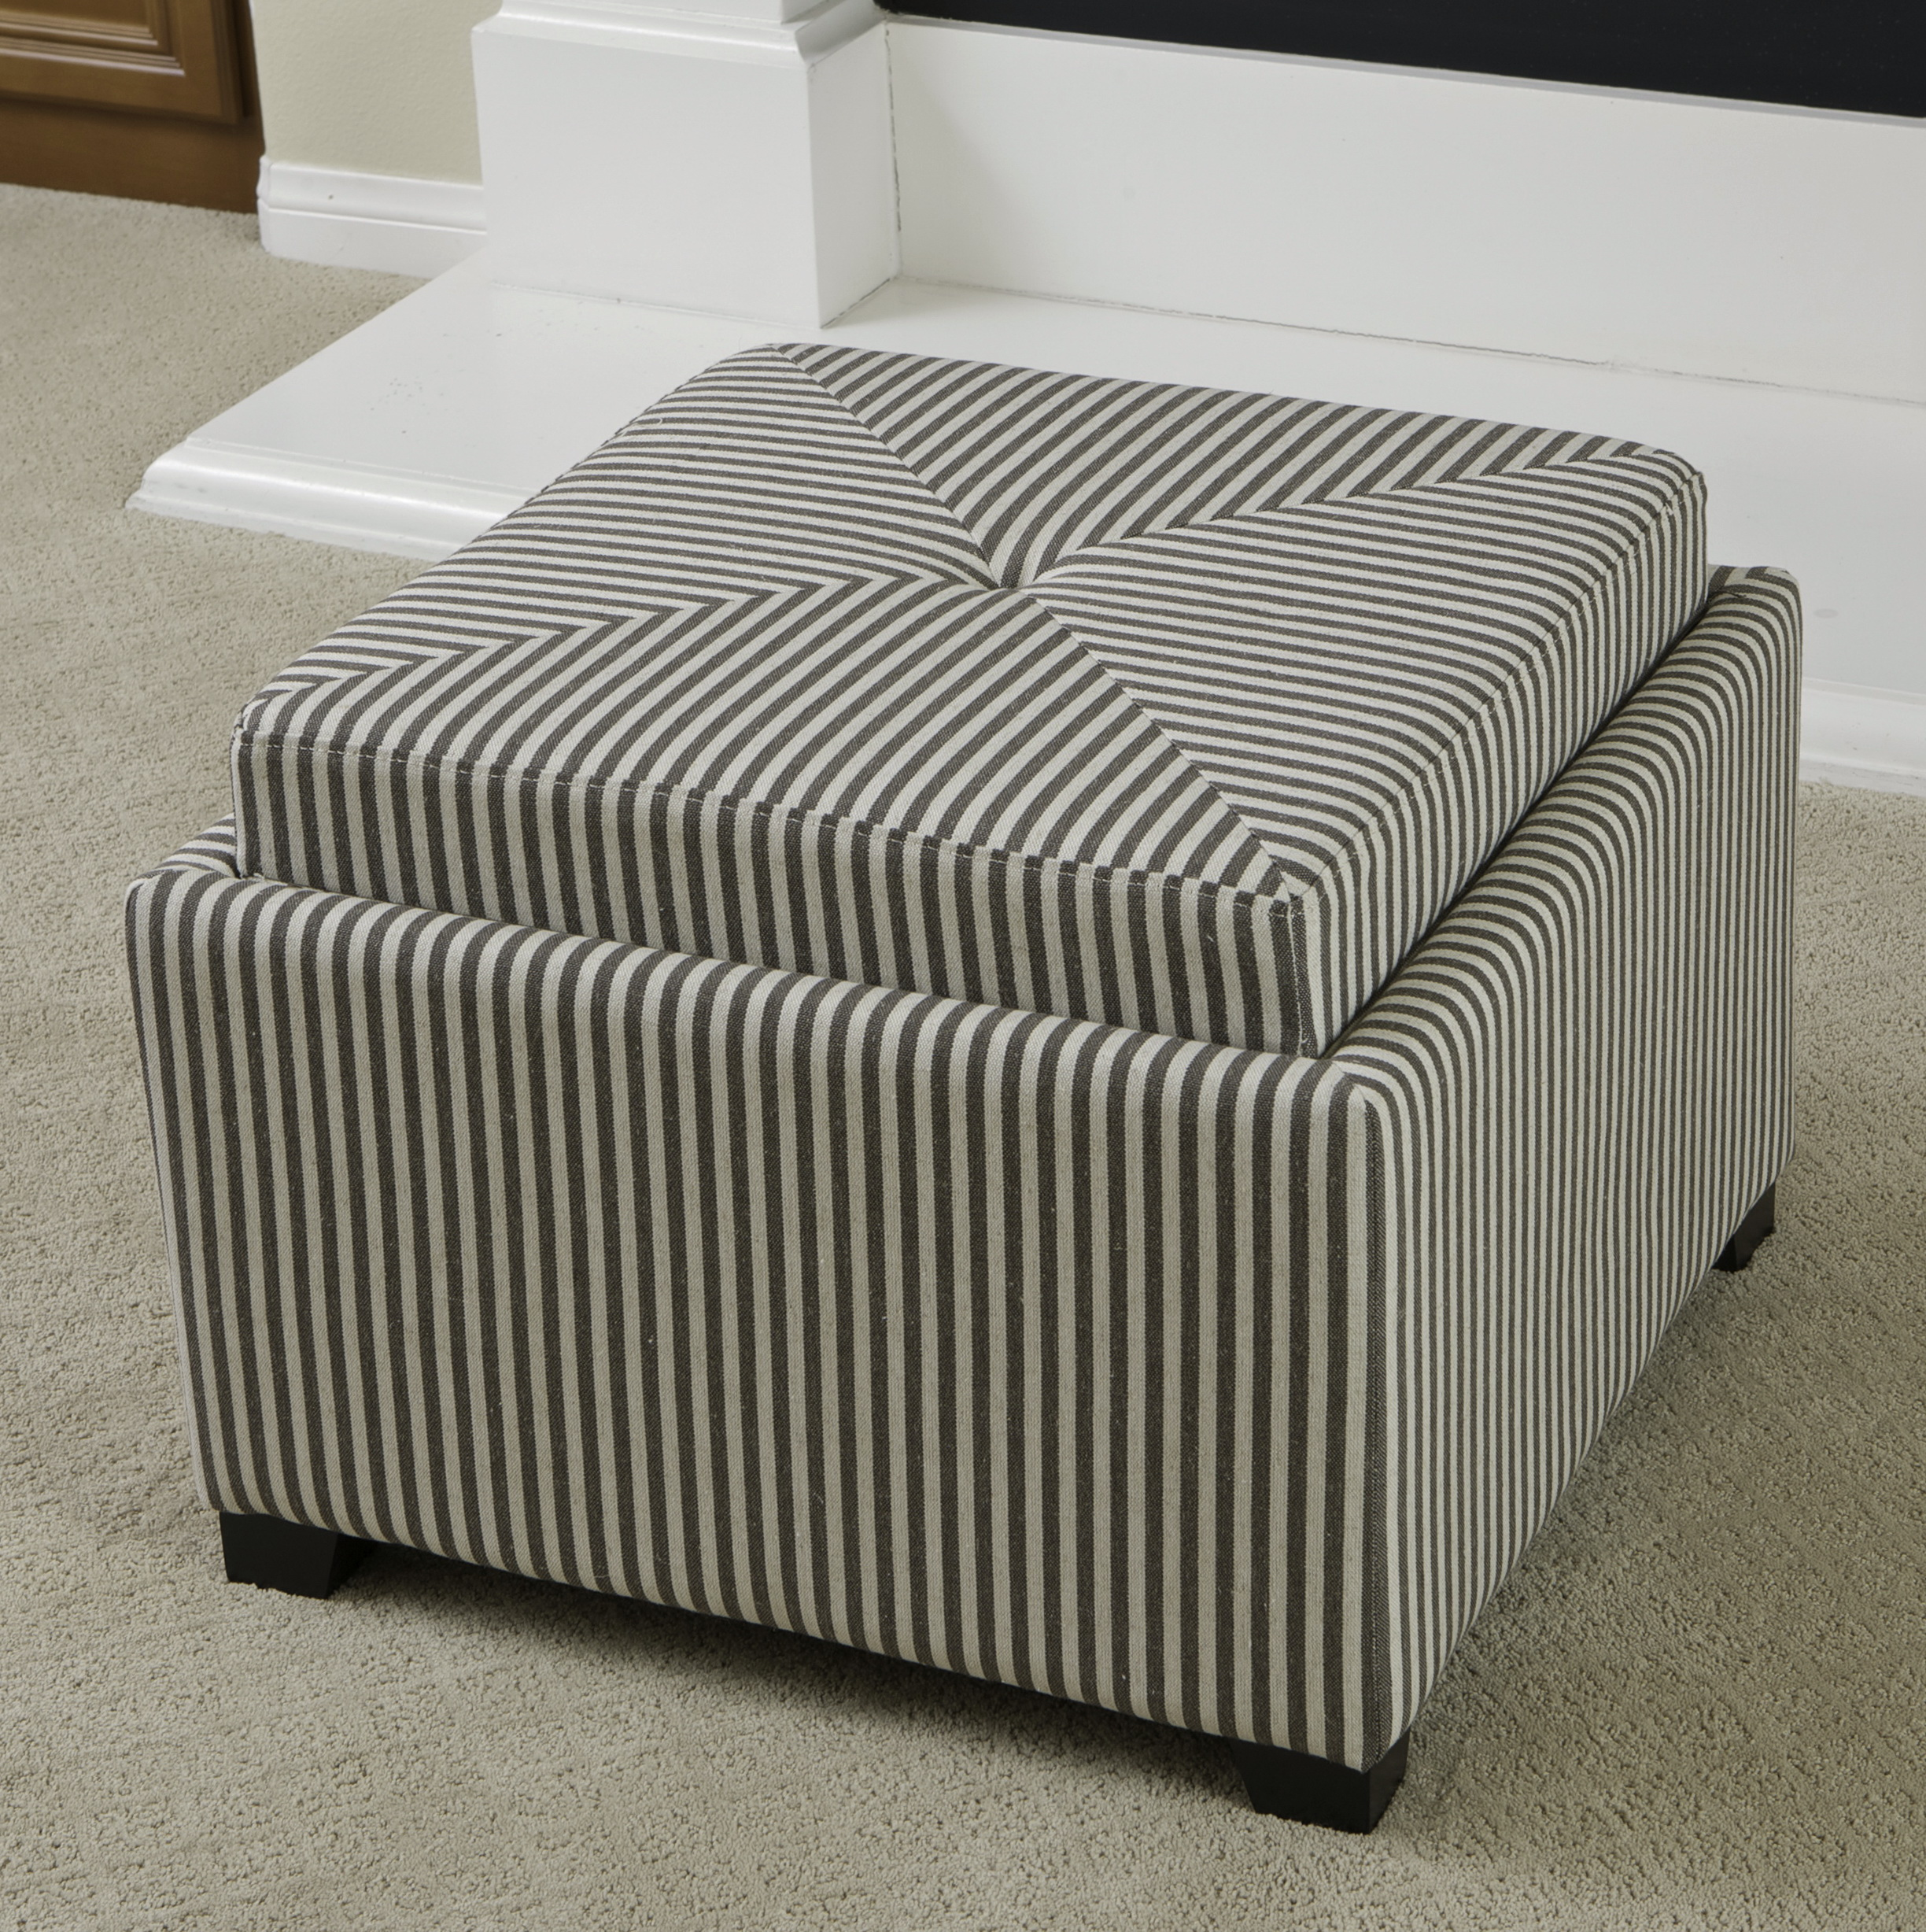 Storage ottoman cube walmart home design ideas for Storage ottoman walmart